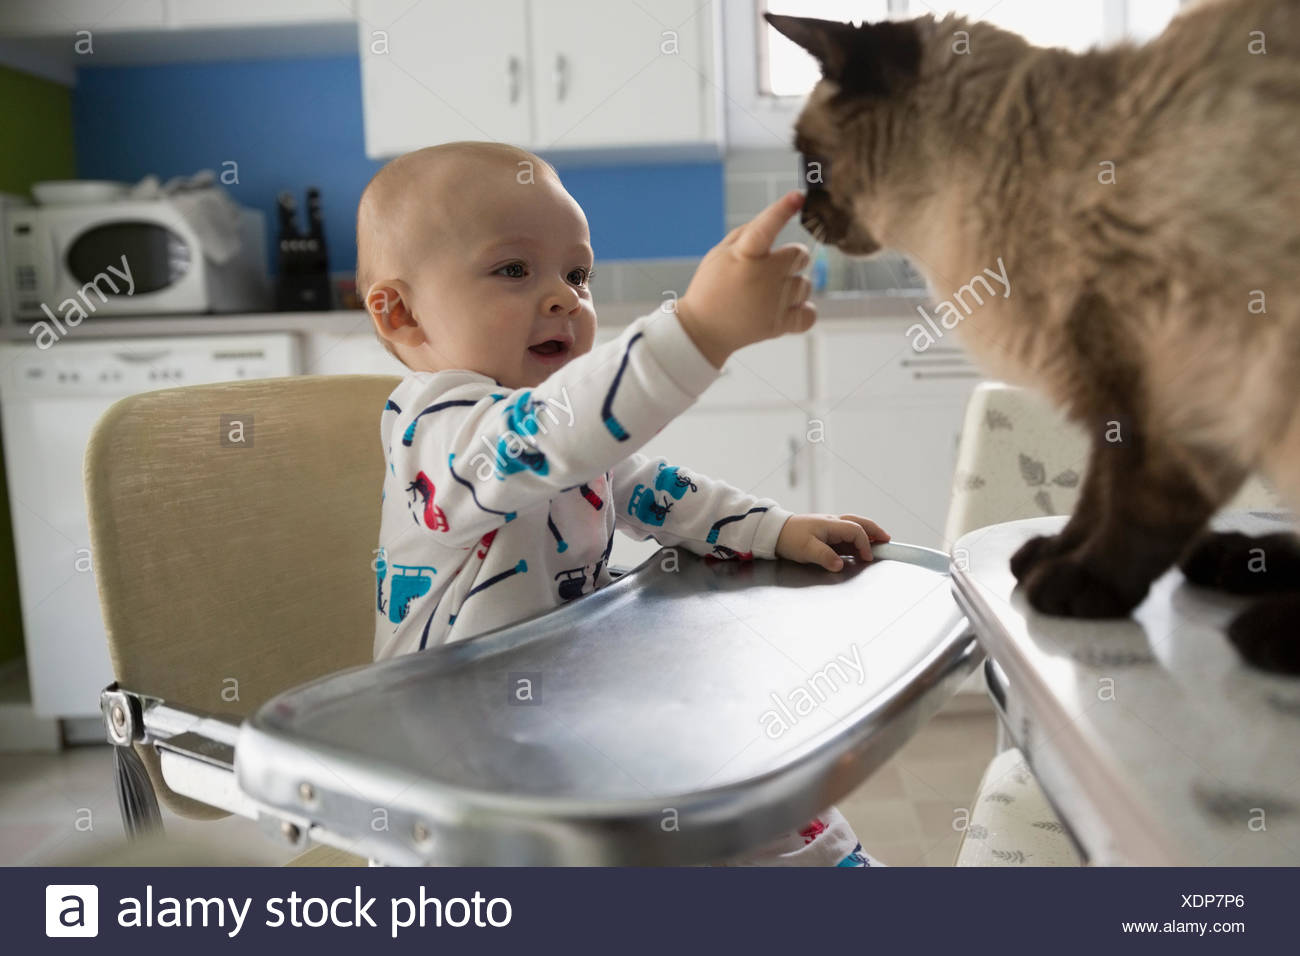 Baby boy high chair petting cat kitchen - Stock Image